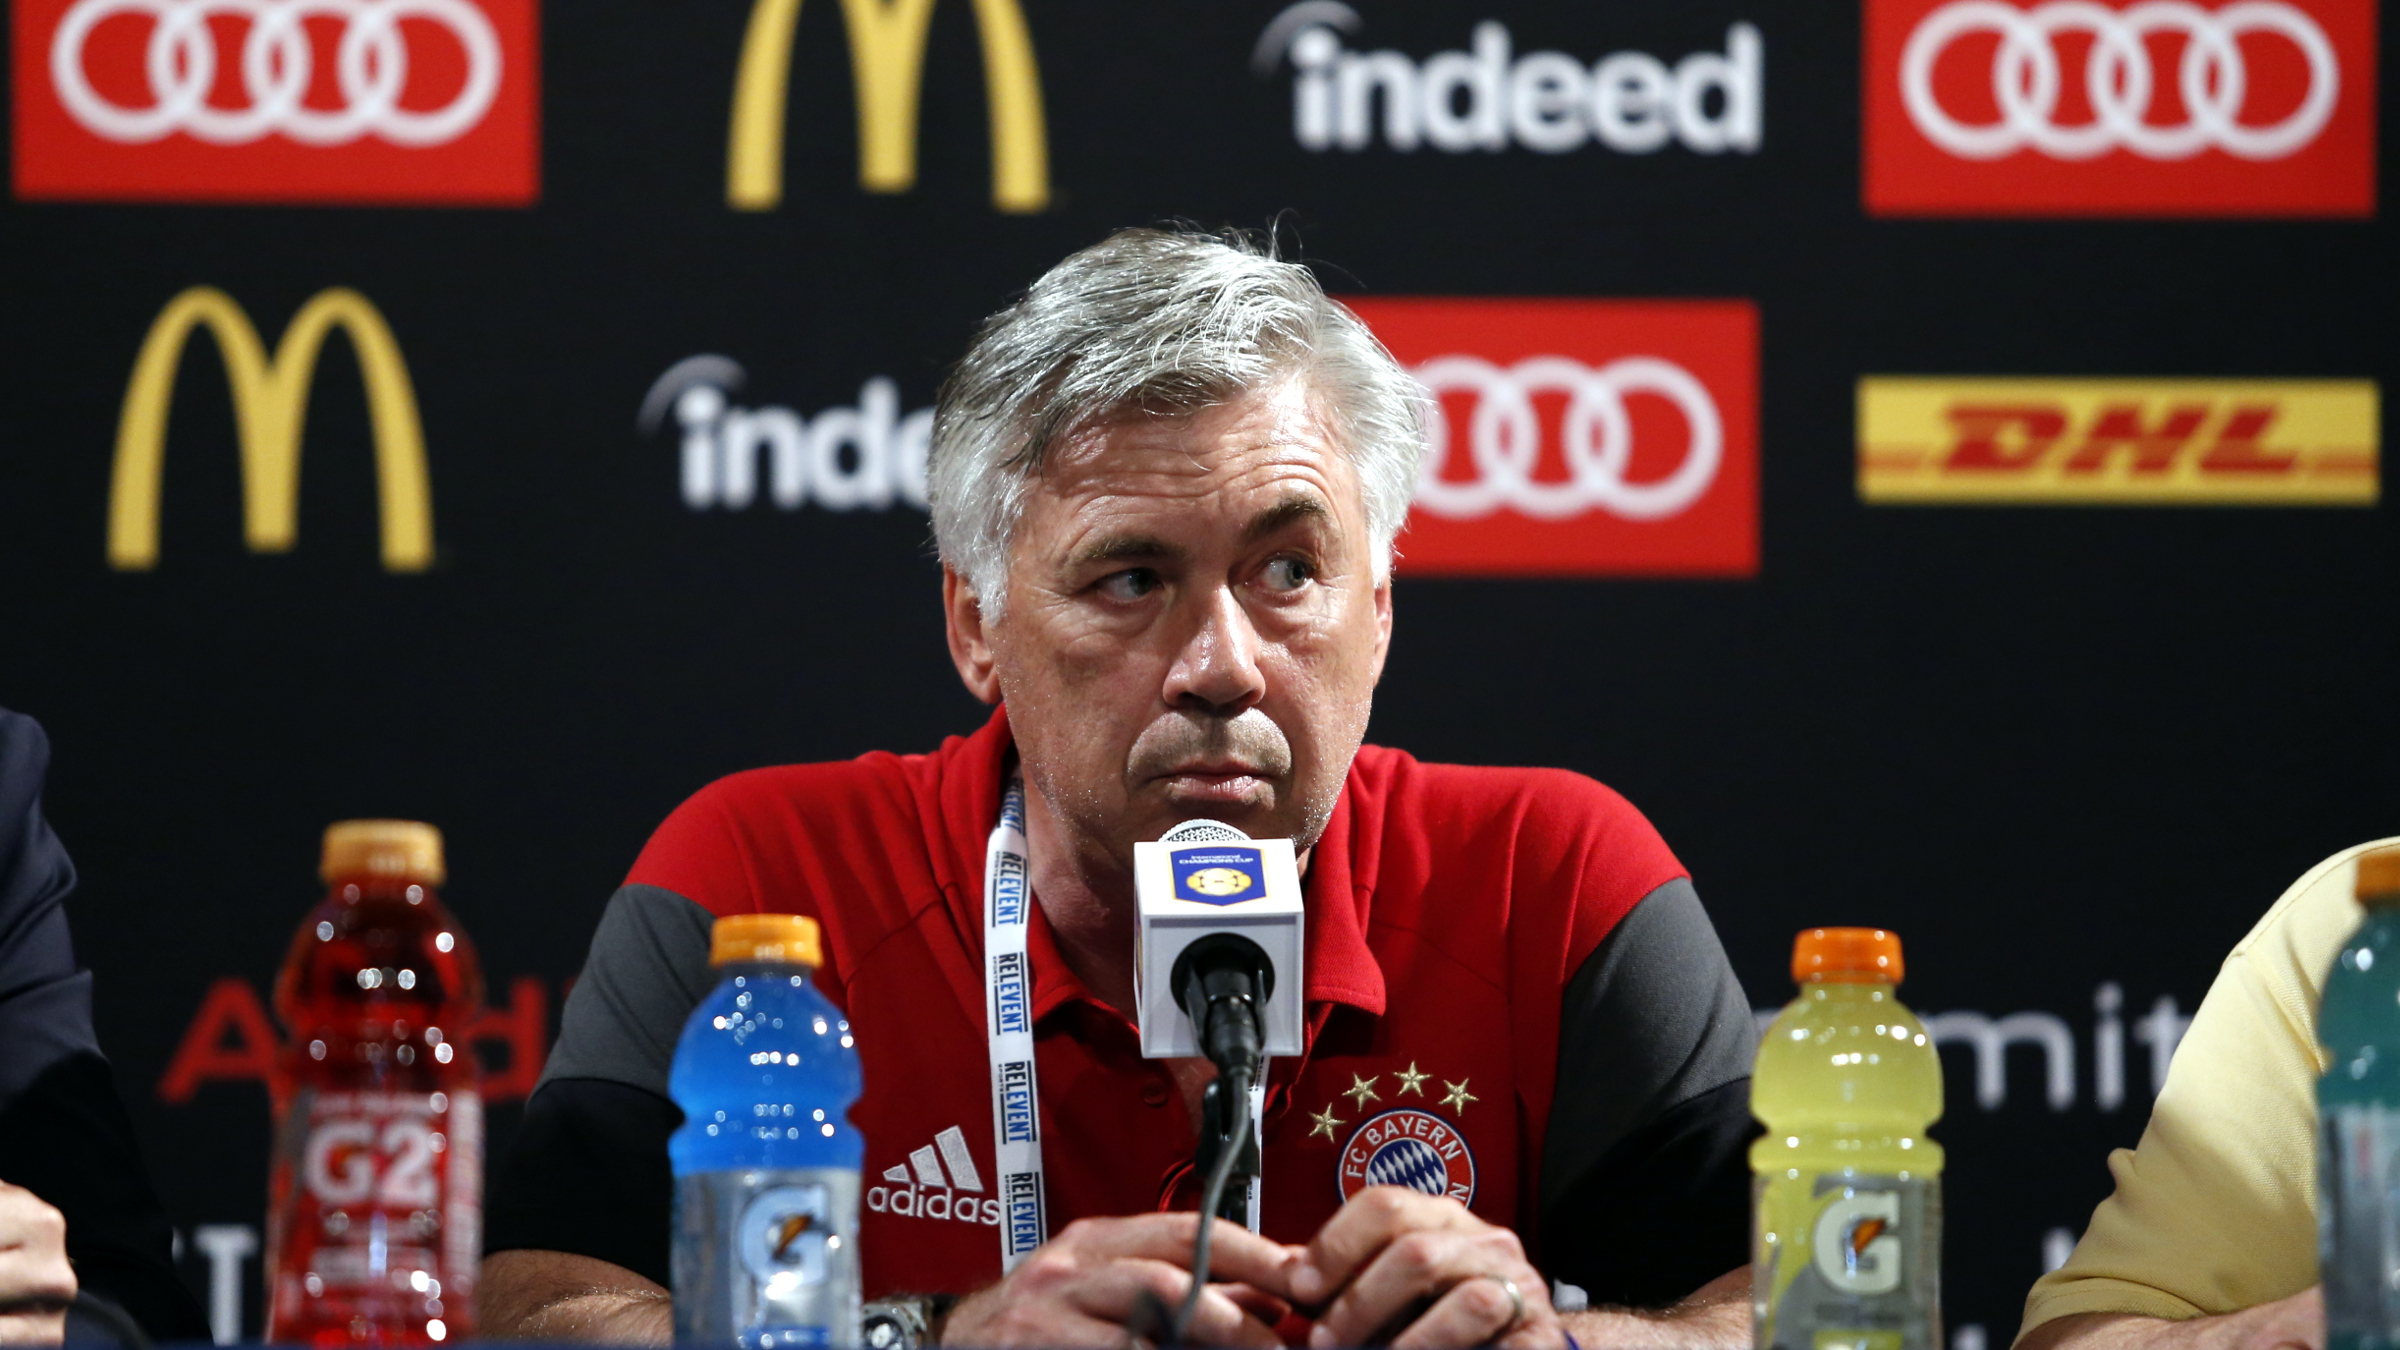 IMAGE DISTRIBUTED FOR INTERNATIONAL CHAMPIONS CUP - FC Bayern Munich coach Carlo Ancelotti speaks during a post game press conference after the match with Real Madrid FC in the International Champions Cup at the MetLife Stadium on Wednesday, Aug. 3, 2016, in East Rutherford, N.J. ()